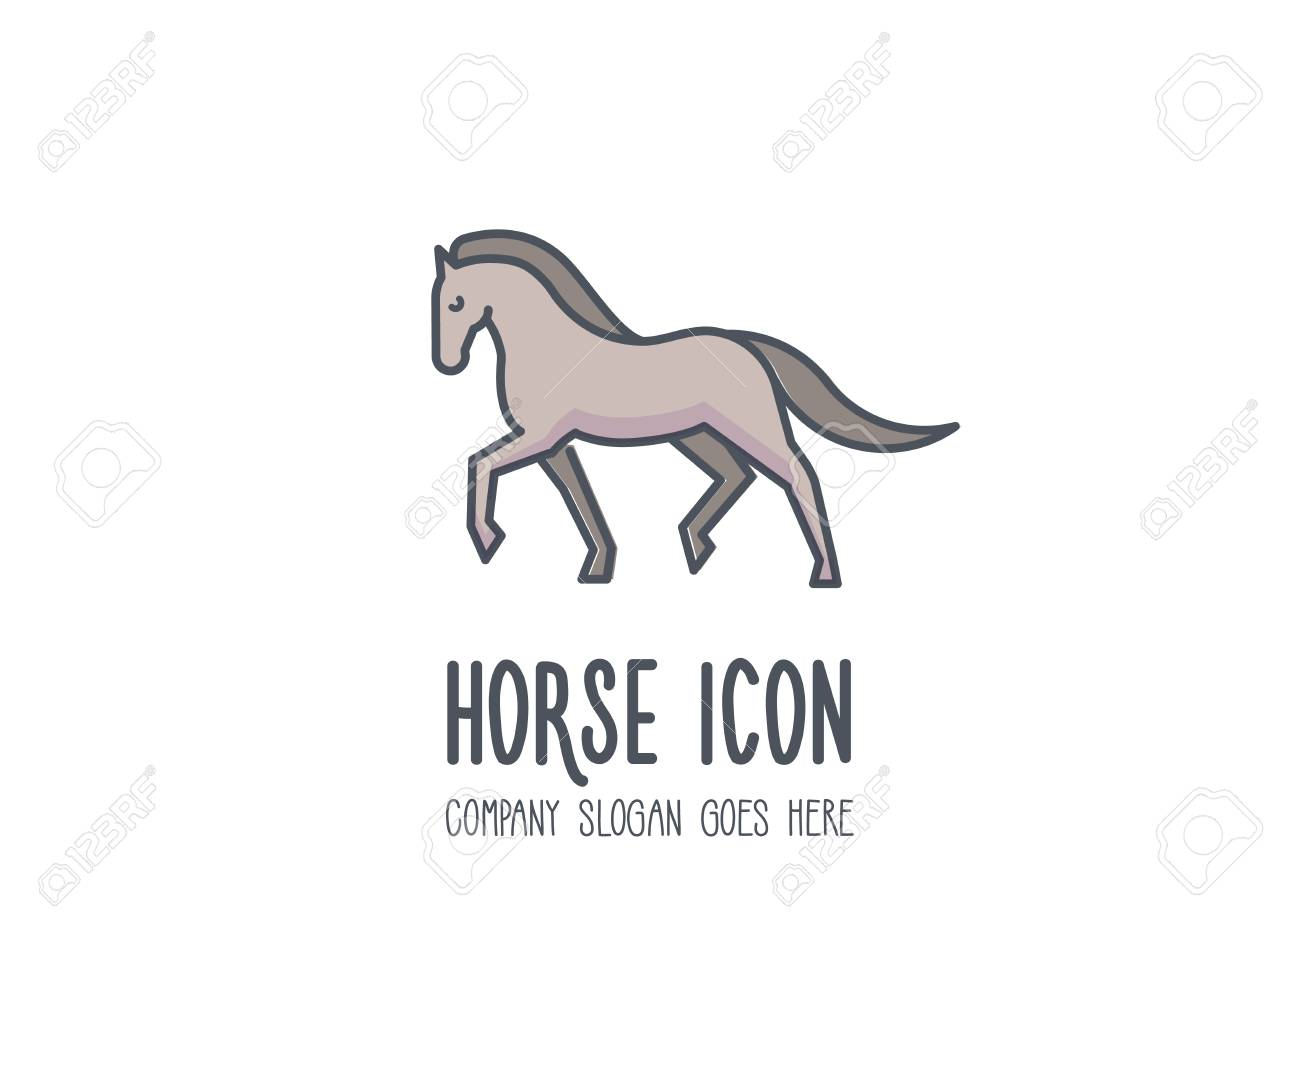 Cute Elegant And Proud Horse Marching Gloriously Vector Animal Royalty Free Cliparts Vectors And Stock Illustration Image 105001909